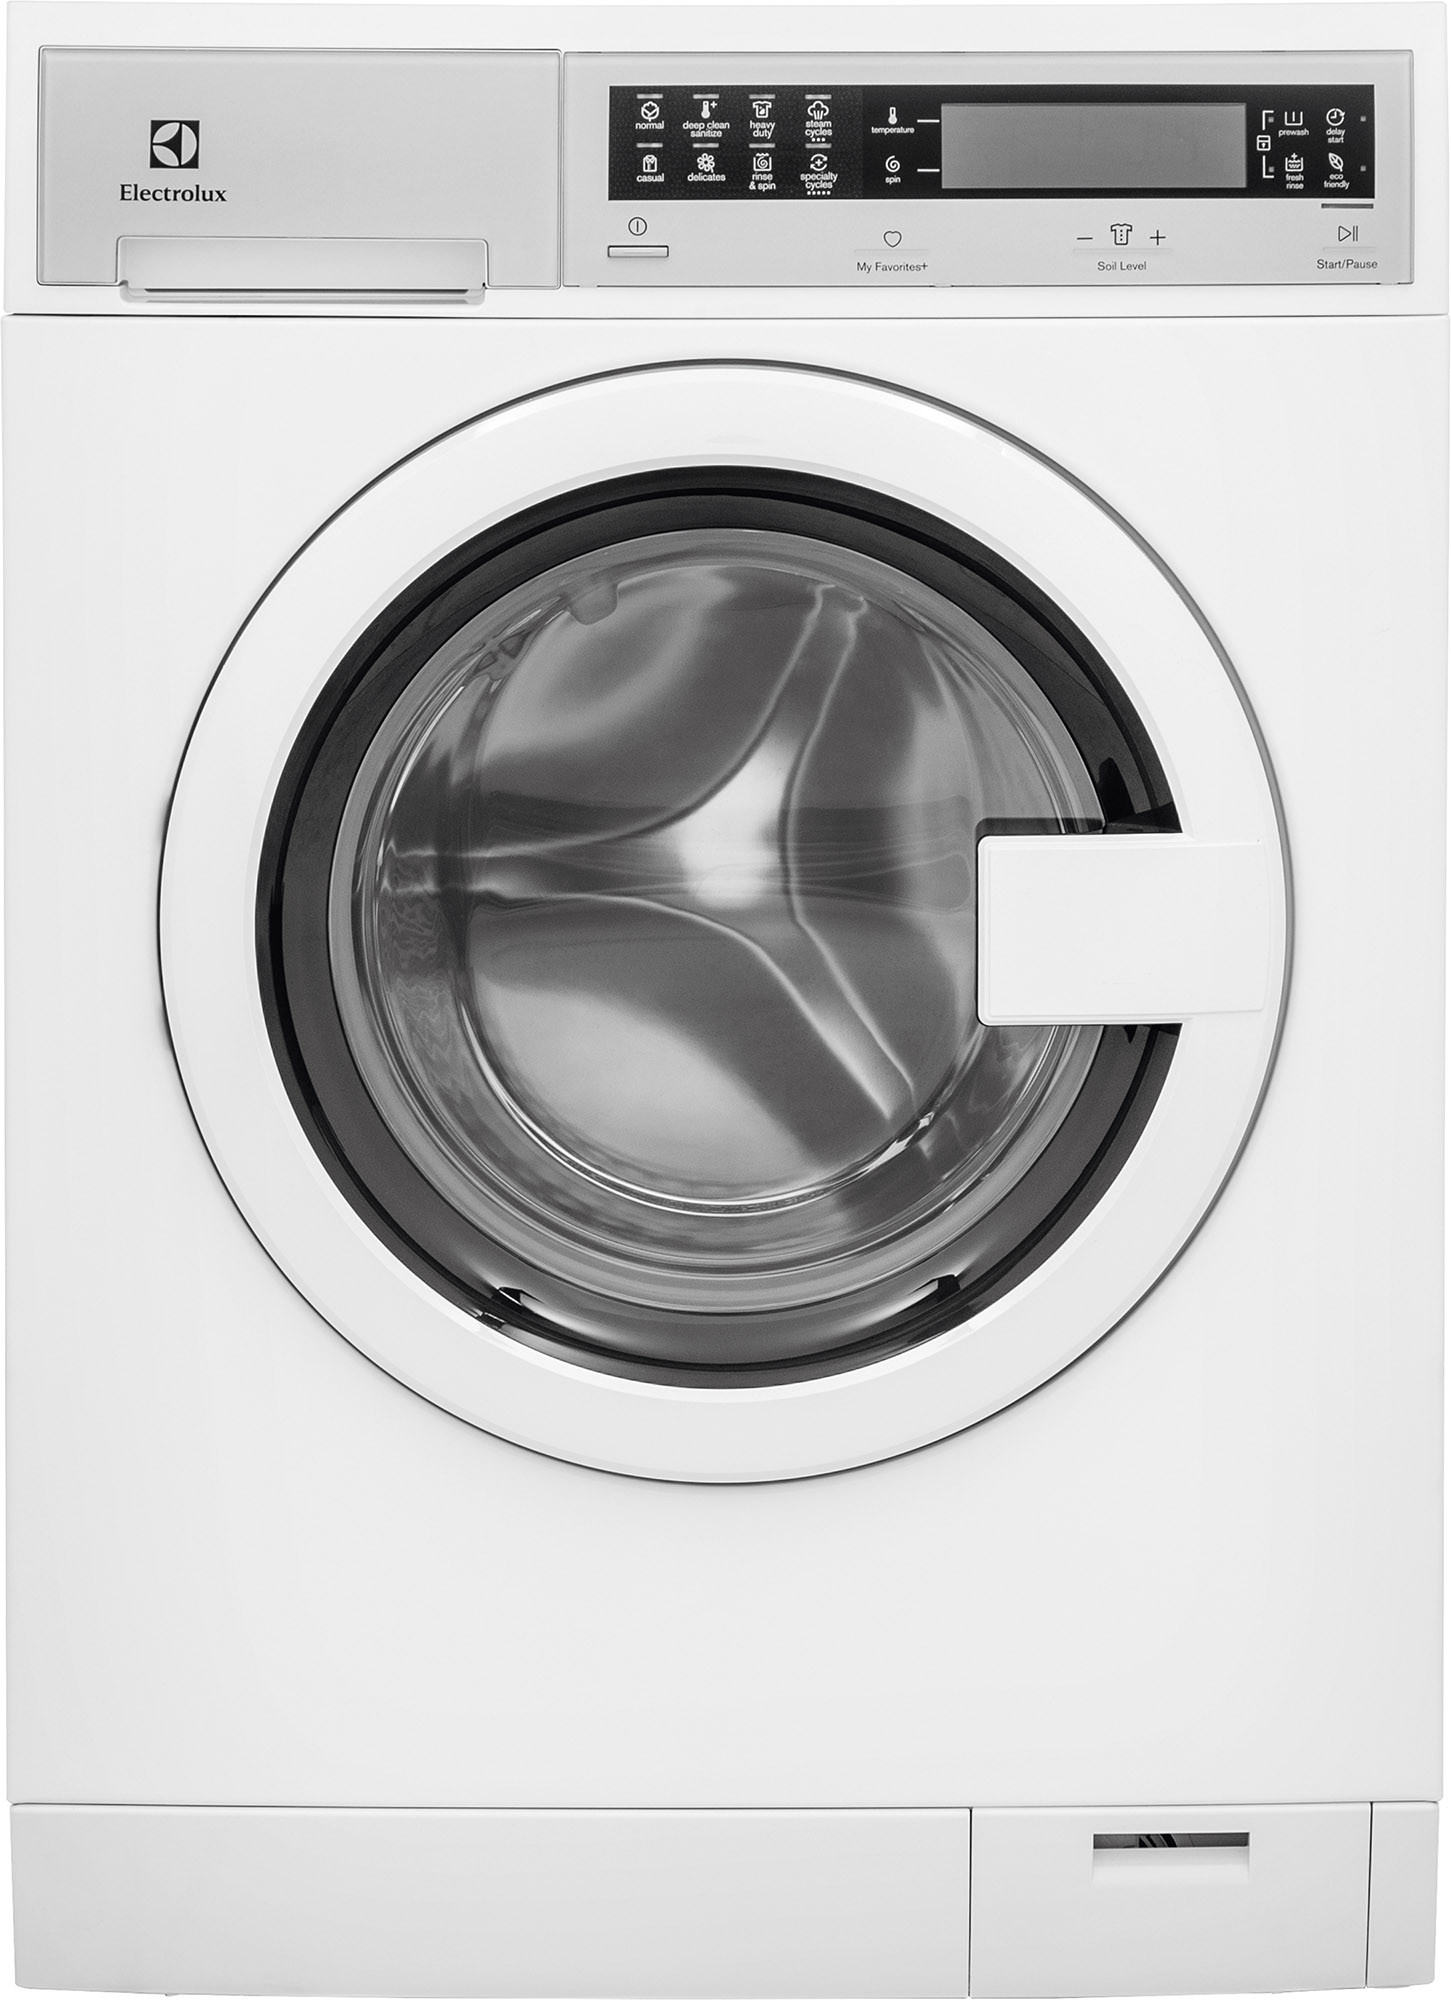 Electrolux 24 Inch Front Load Washer